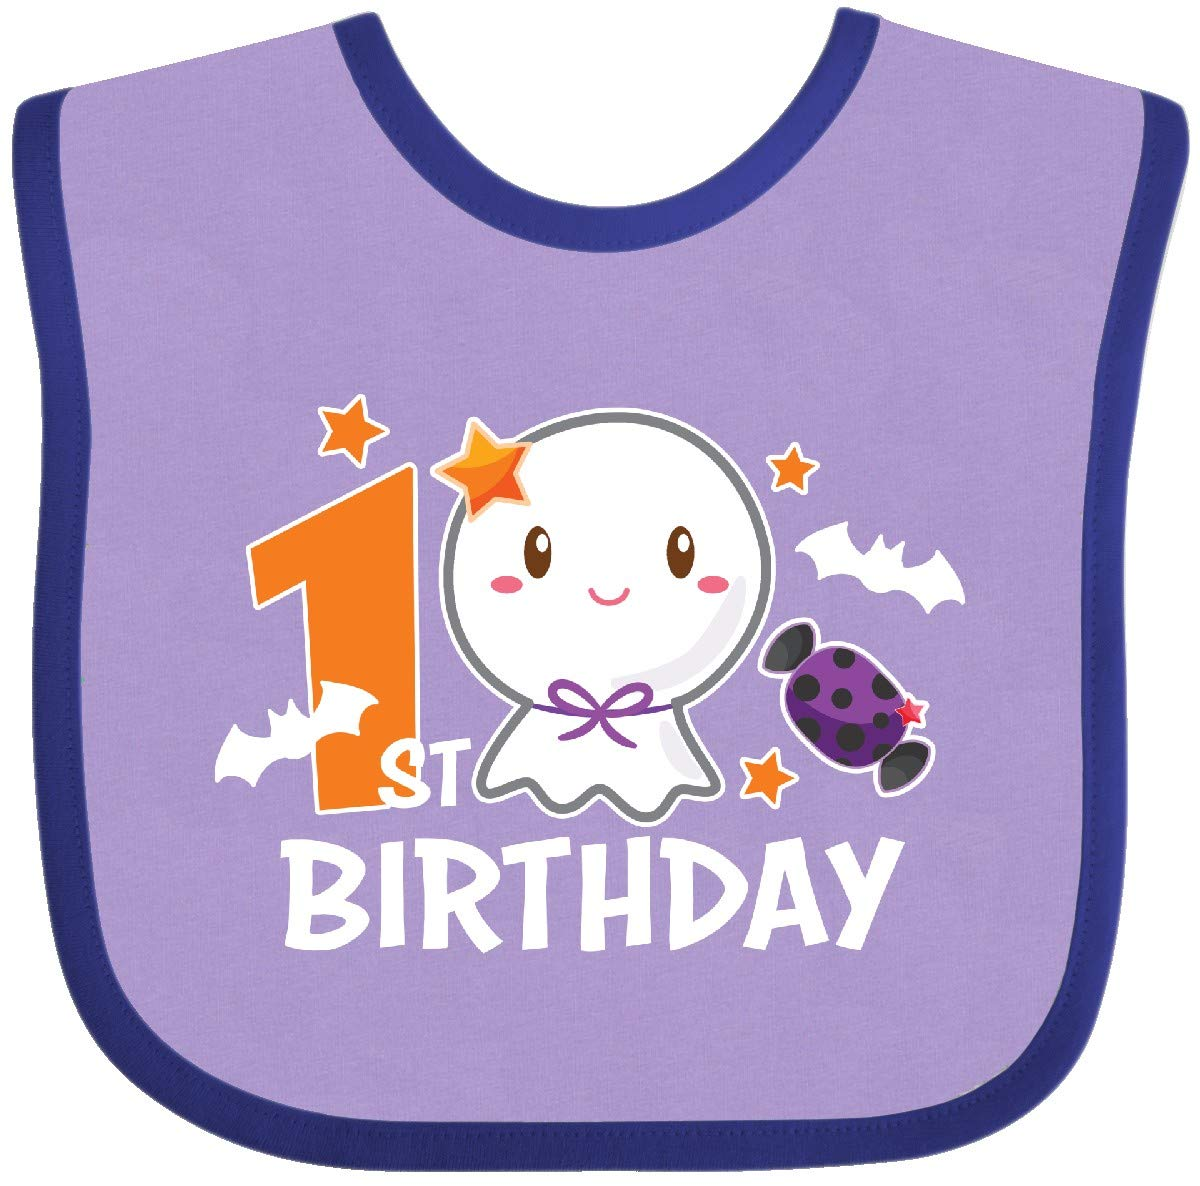 inktastic 1st Birthday with Cute Ghost with Bats Baby T-Shirt